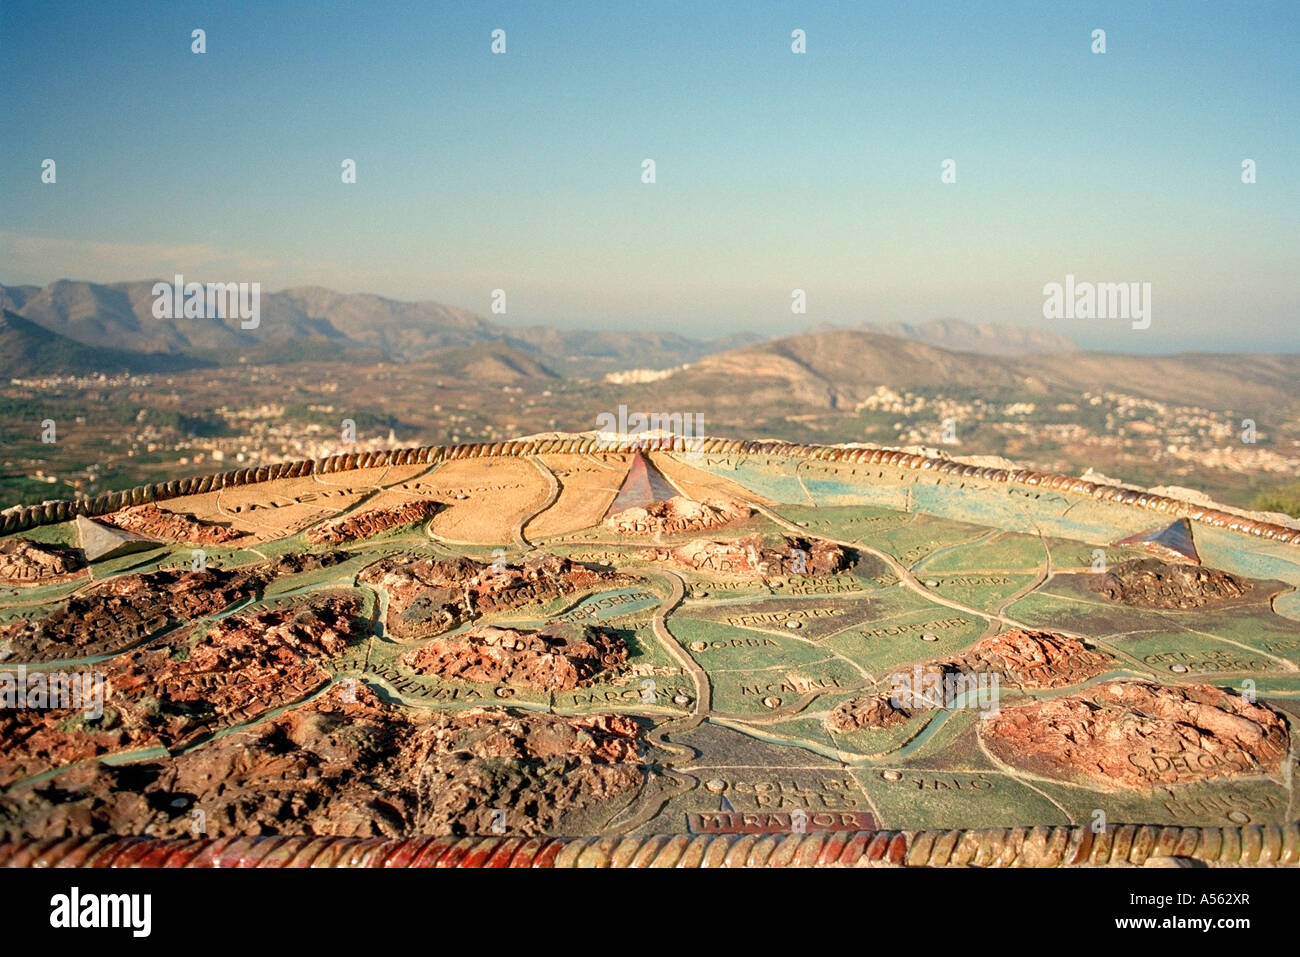 Map Of Spain Jalon.Pottery Map Of The Jalon Valley Spain Stock Photo 11209054 Alamy